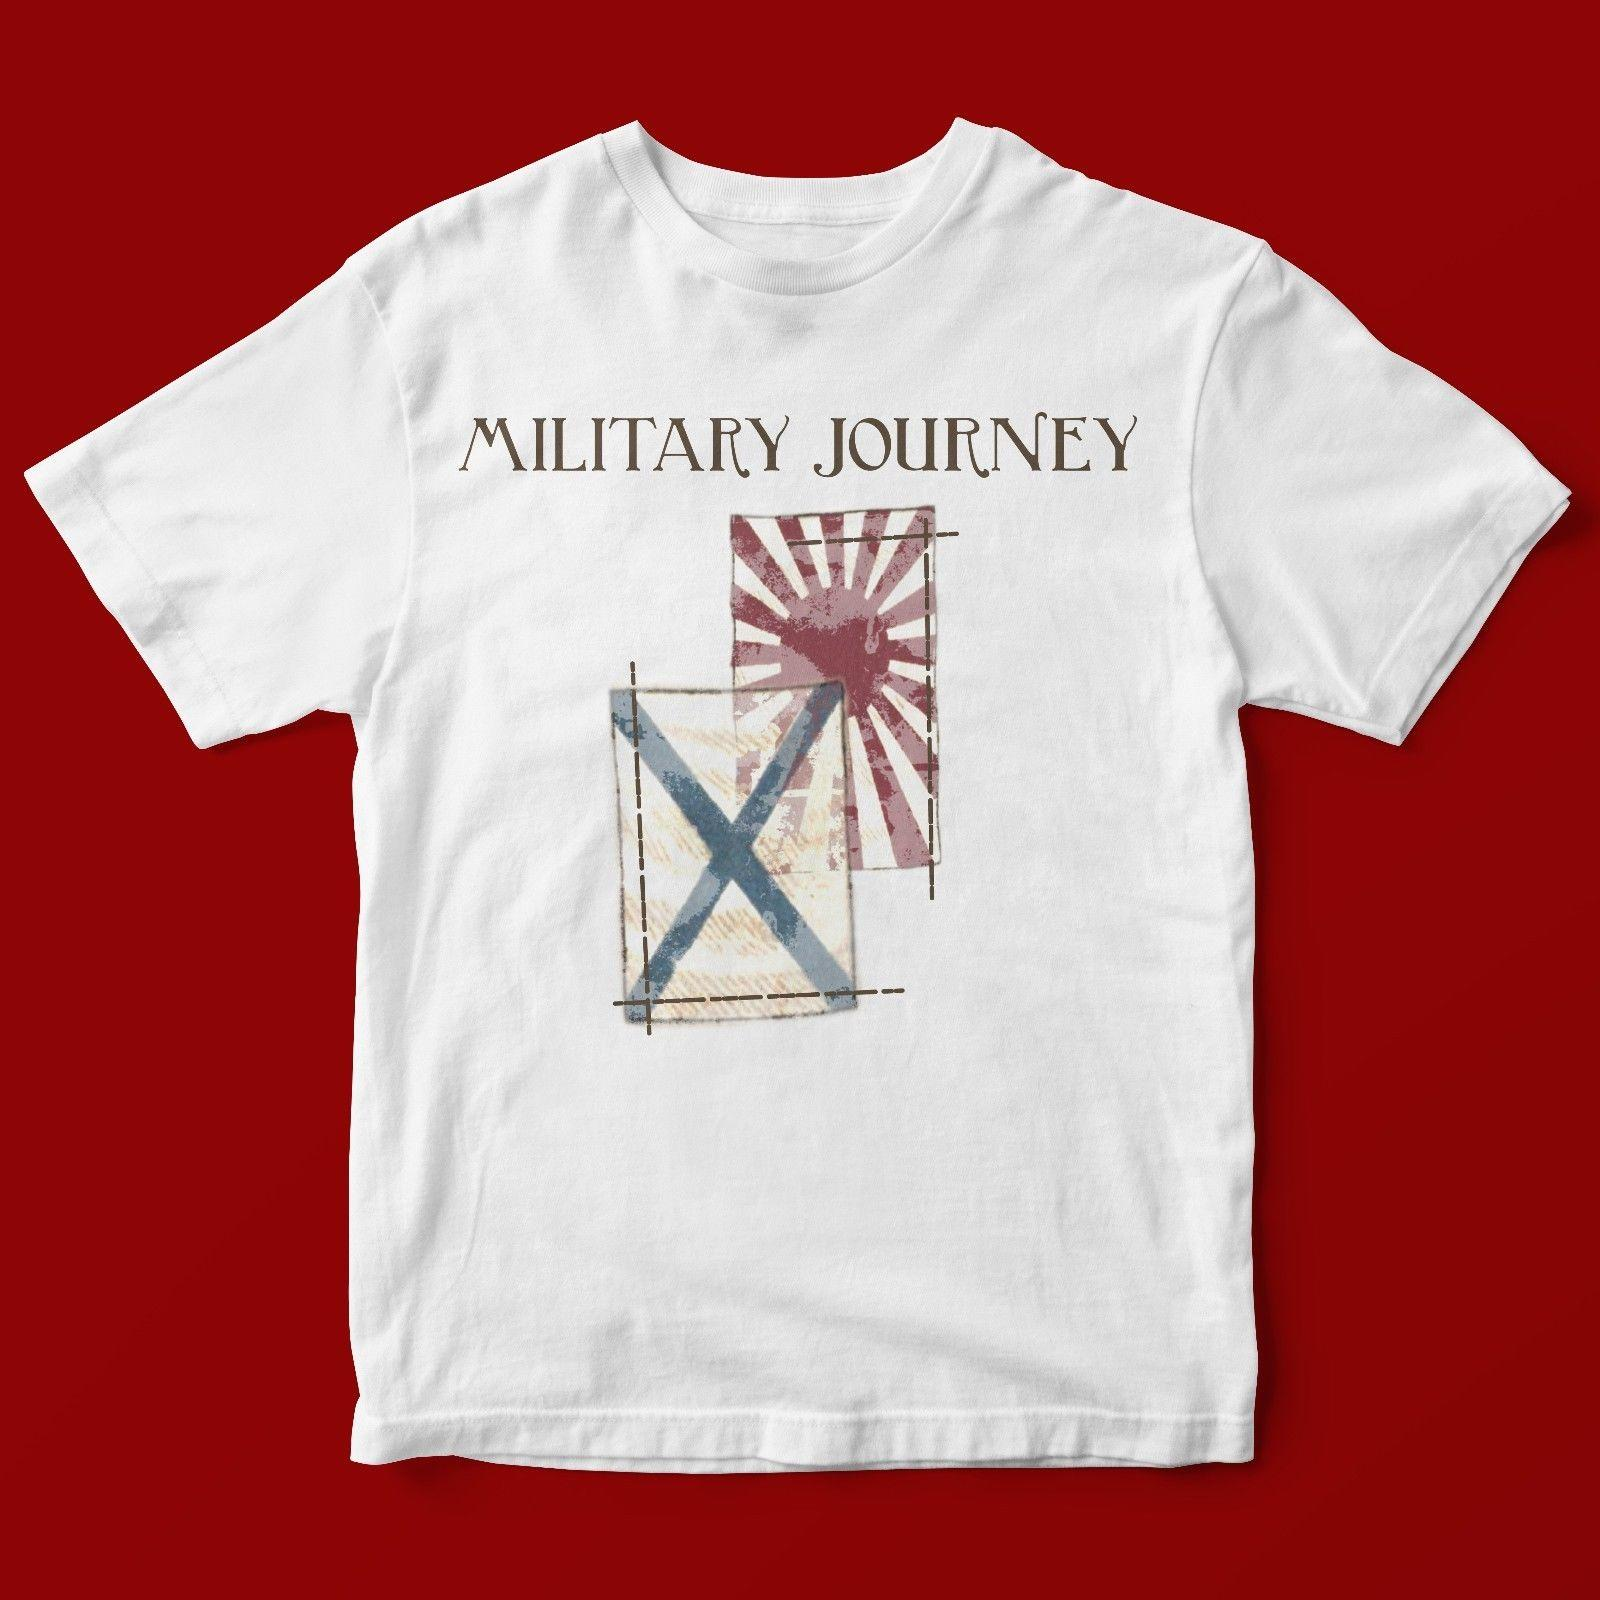 a99889728bb7 MILITARY JOURNEY T SHIRT UNISEX 502 T Shirts Buy Online Humor Tees From  Vectorbomb, $11.01| DHgate.Com